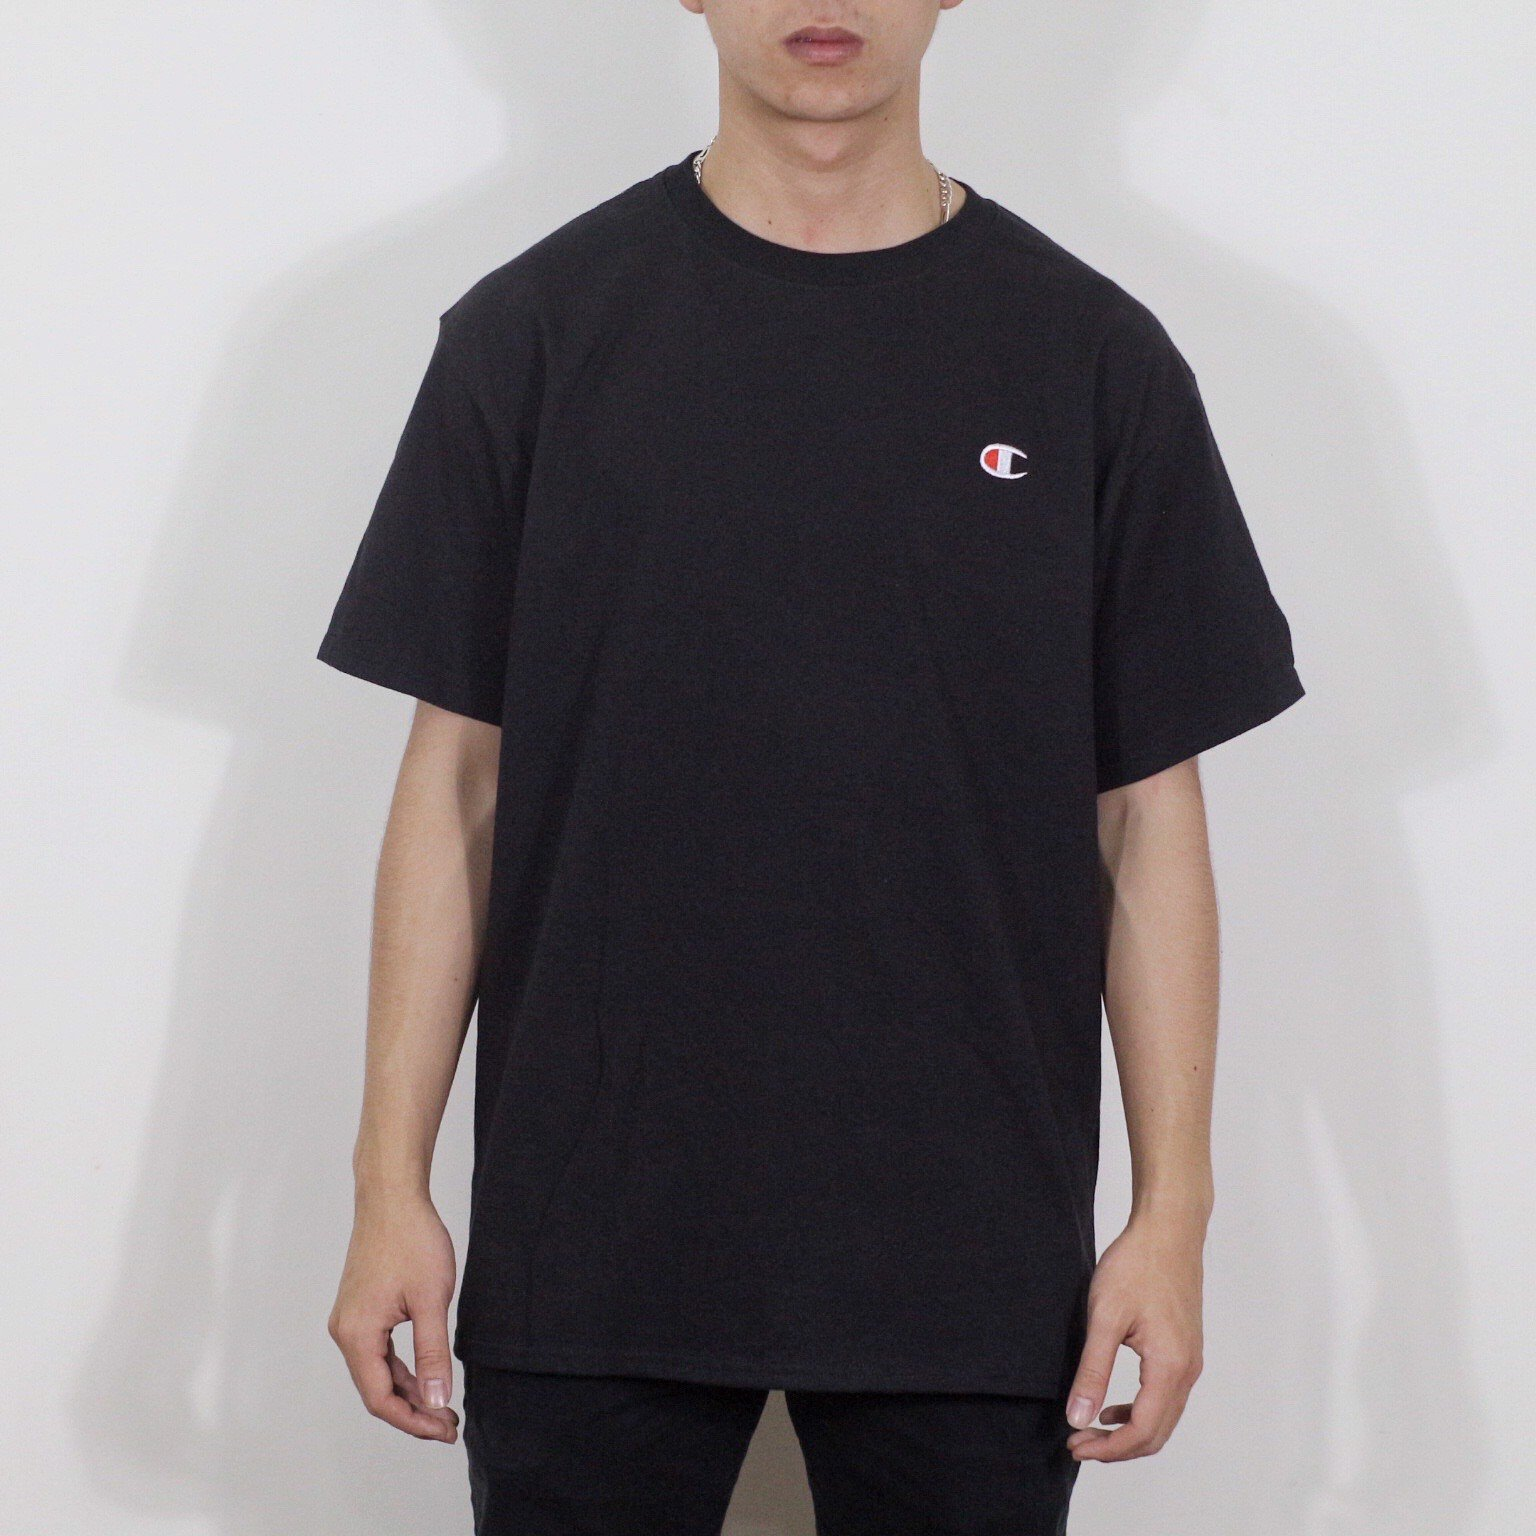 P100169 CHAMPION EMBROIDERED MINI C LOGO TEE